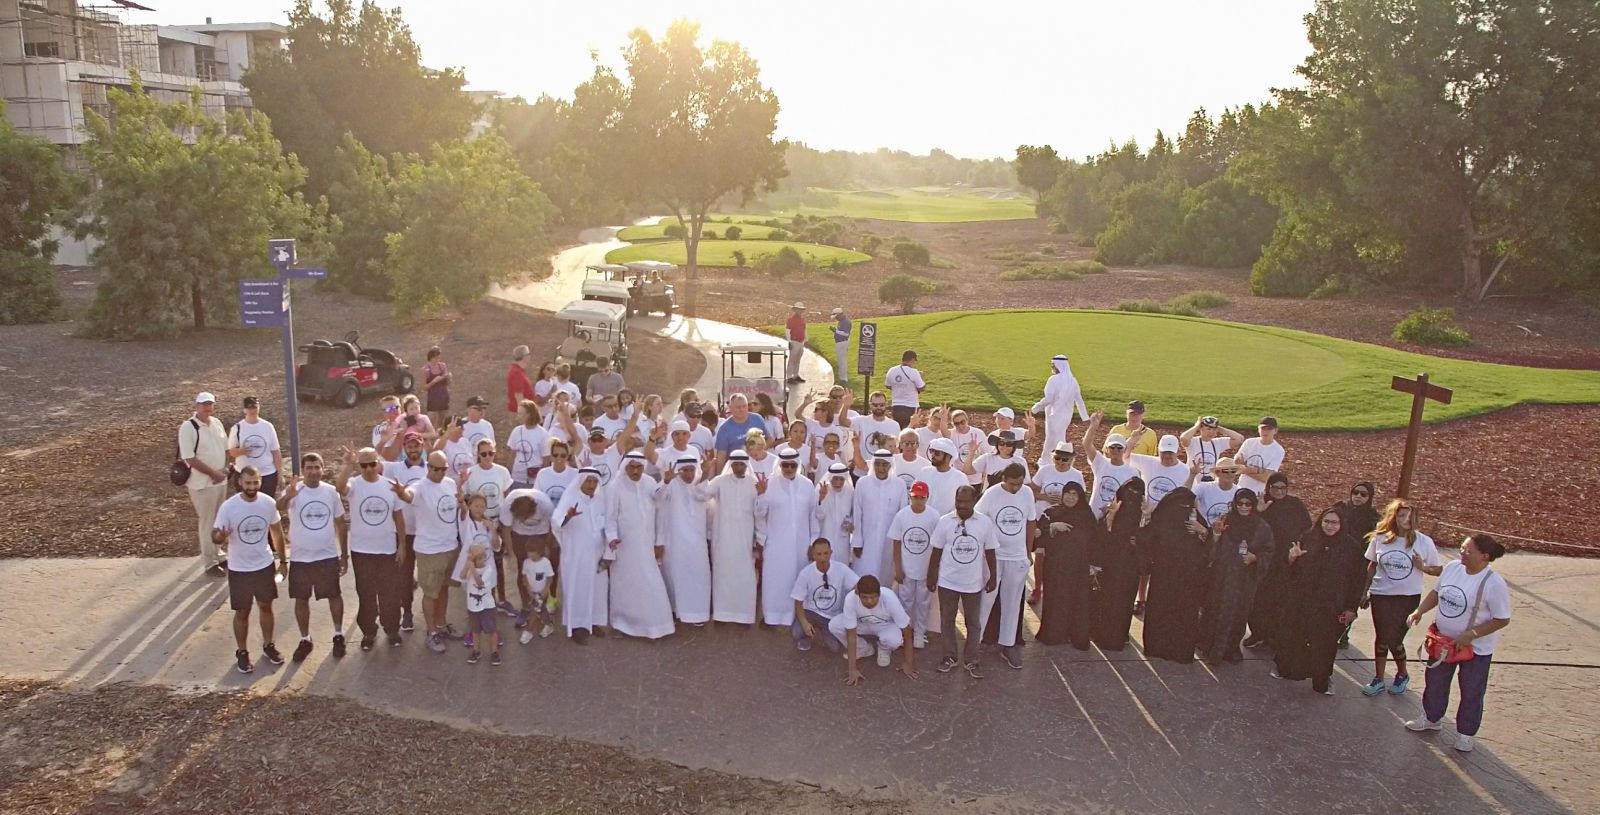 Hundreds join the Dubai Fitness Challenge Walk at  Jumeirah Golf Estates' Championship Golf Course